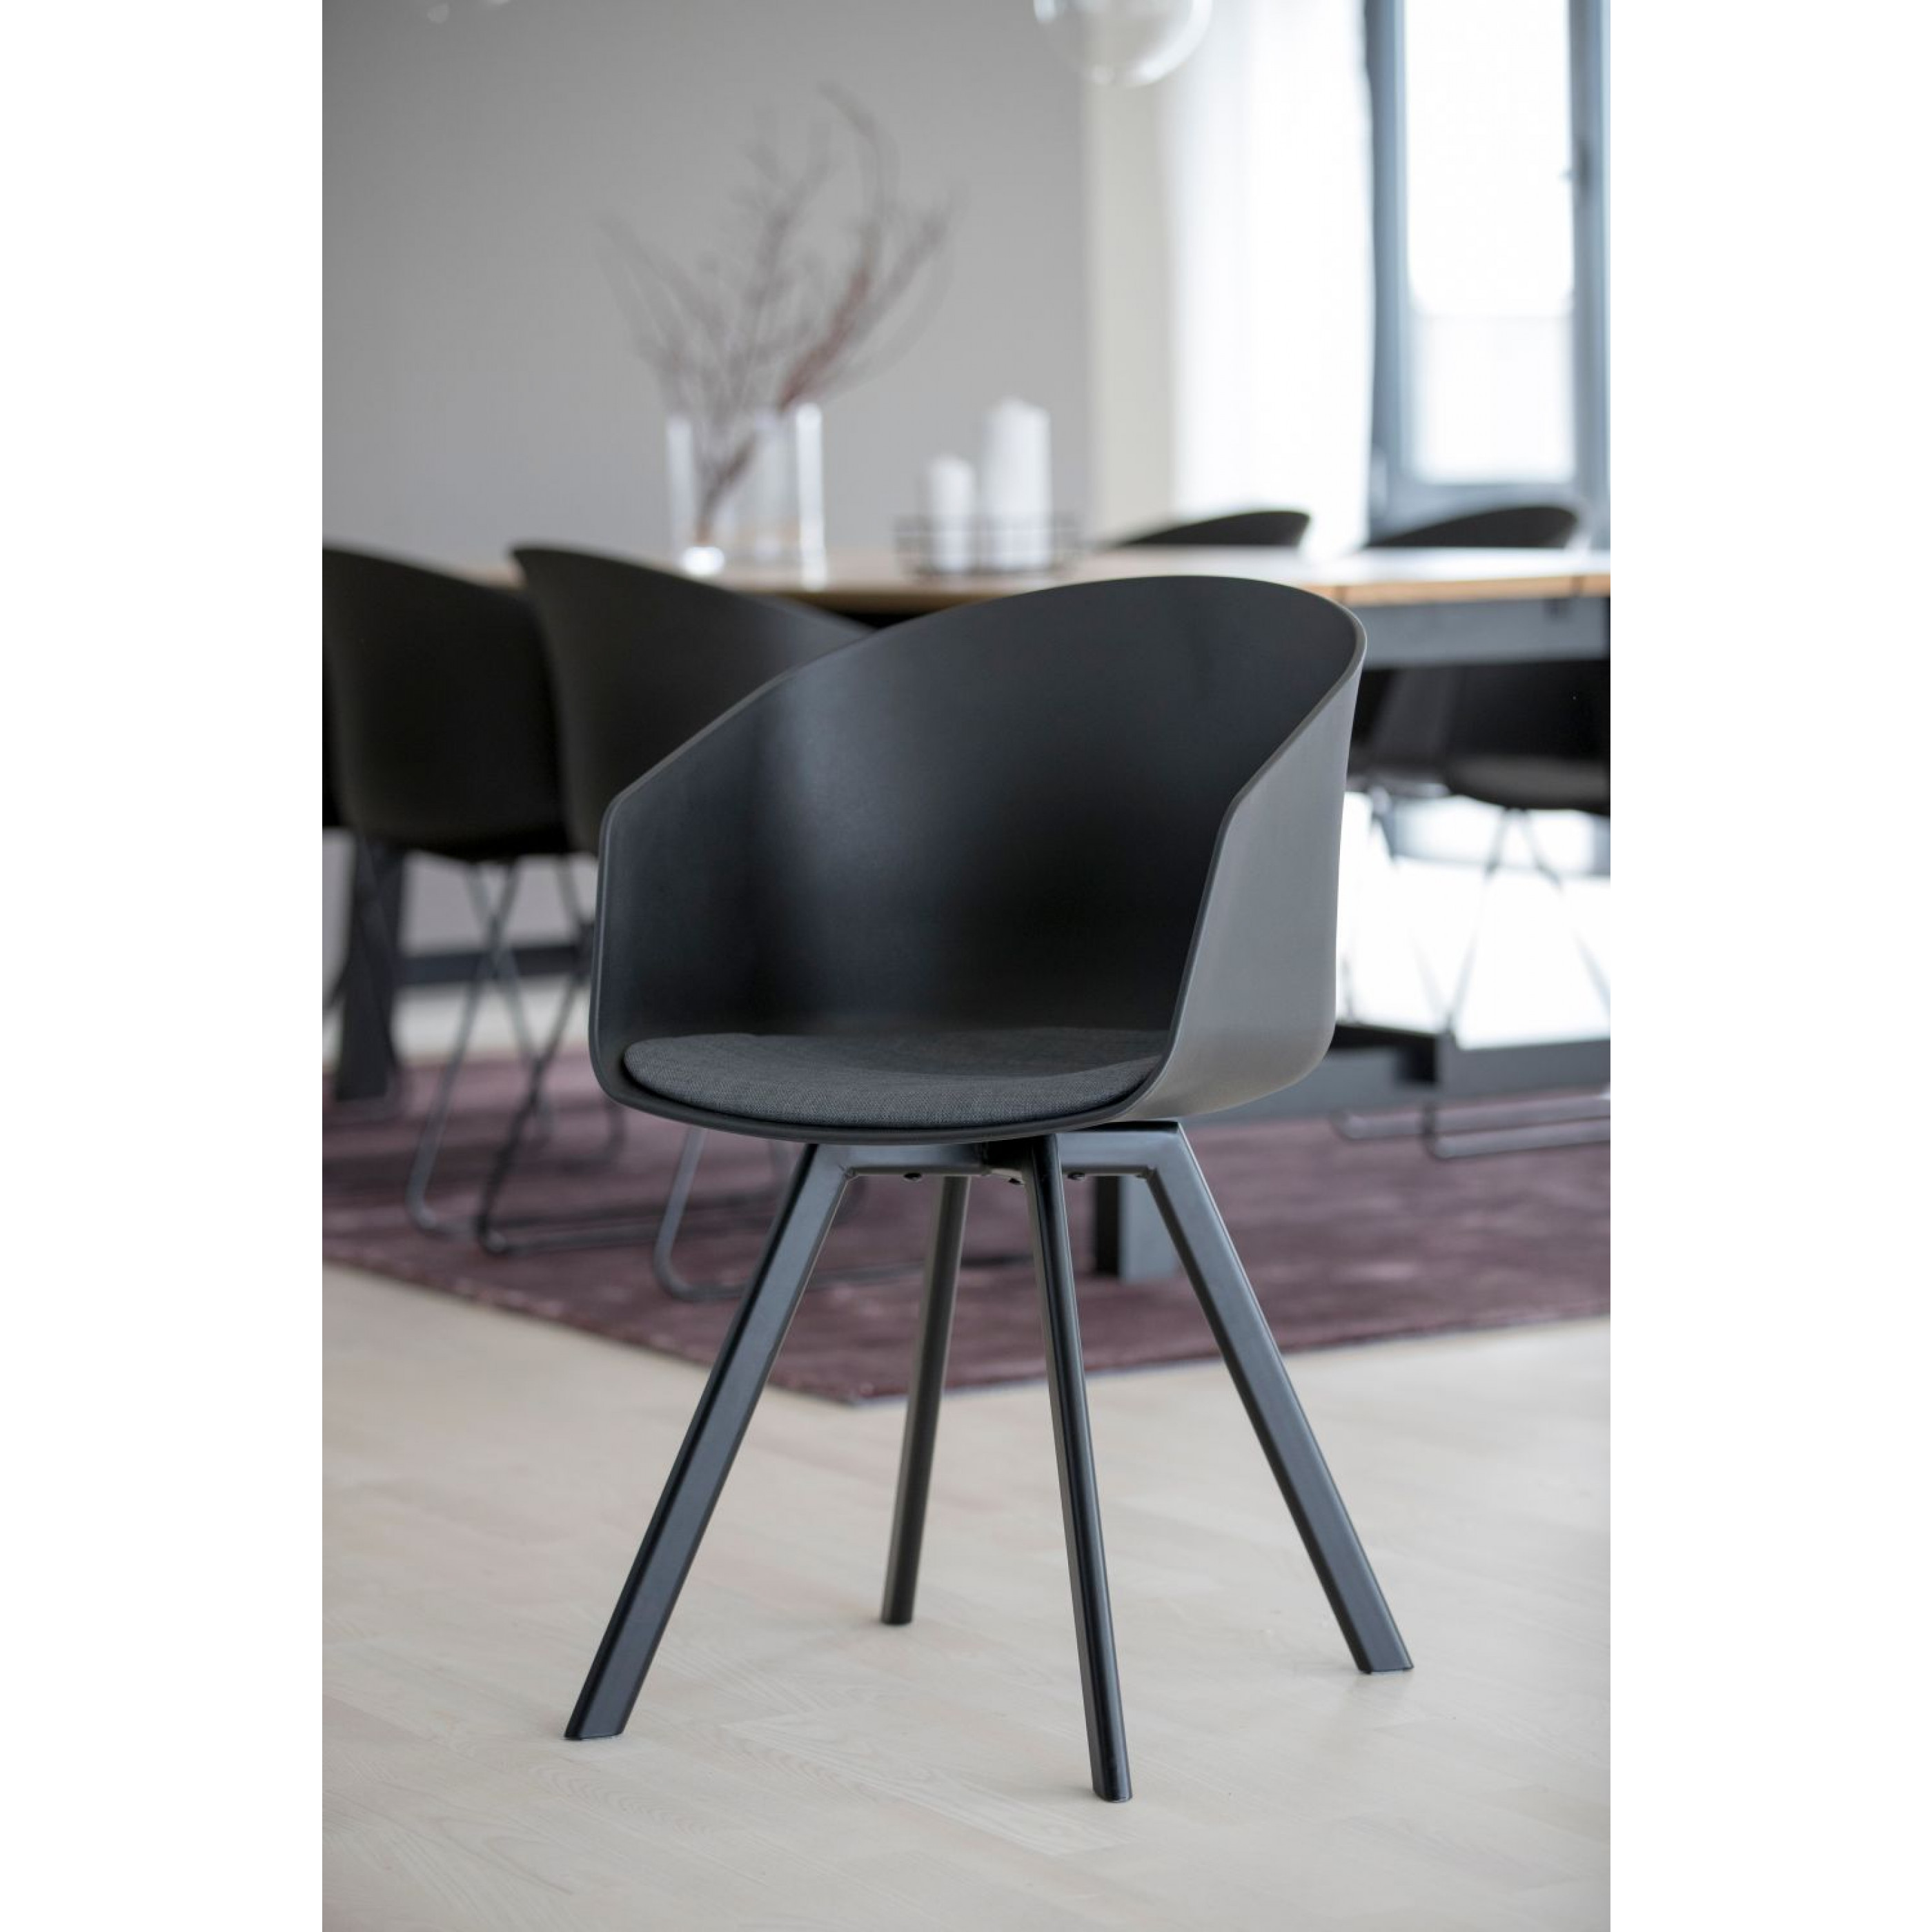 Set of 2 Chairs Loon | Black / Grey Fabric